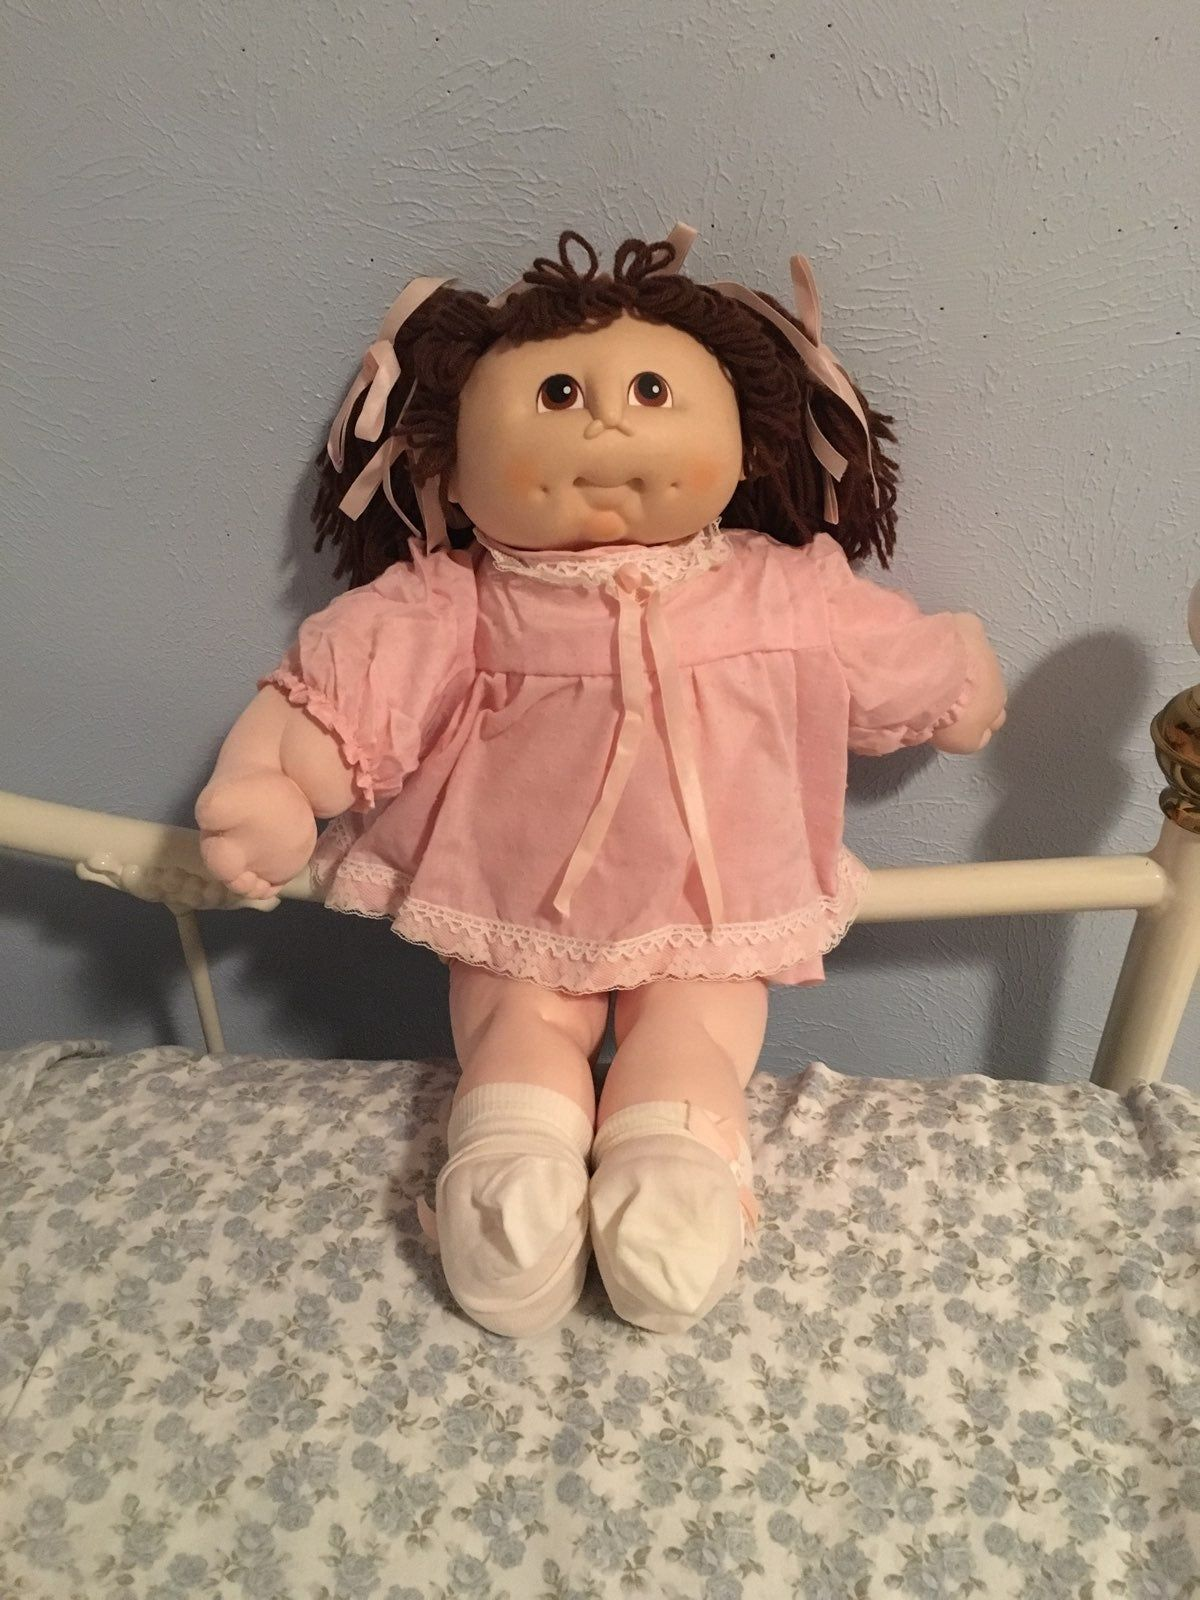 Im Not Sure If The Worth So If I M Too High Please Let Me Know Send Offers She Looks In Good Cabbage Patch Kids Dolls Cabbage Patch Dolls Cabbage Patch Kids